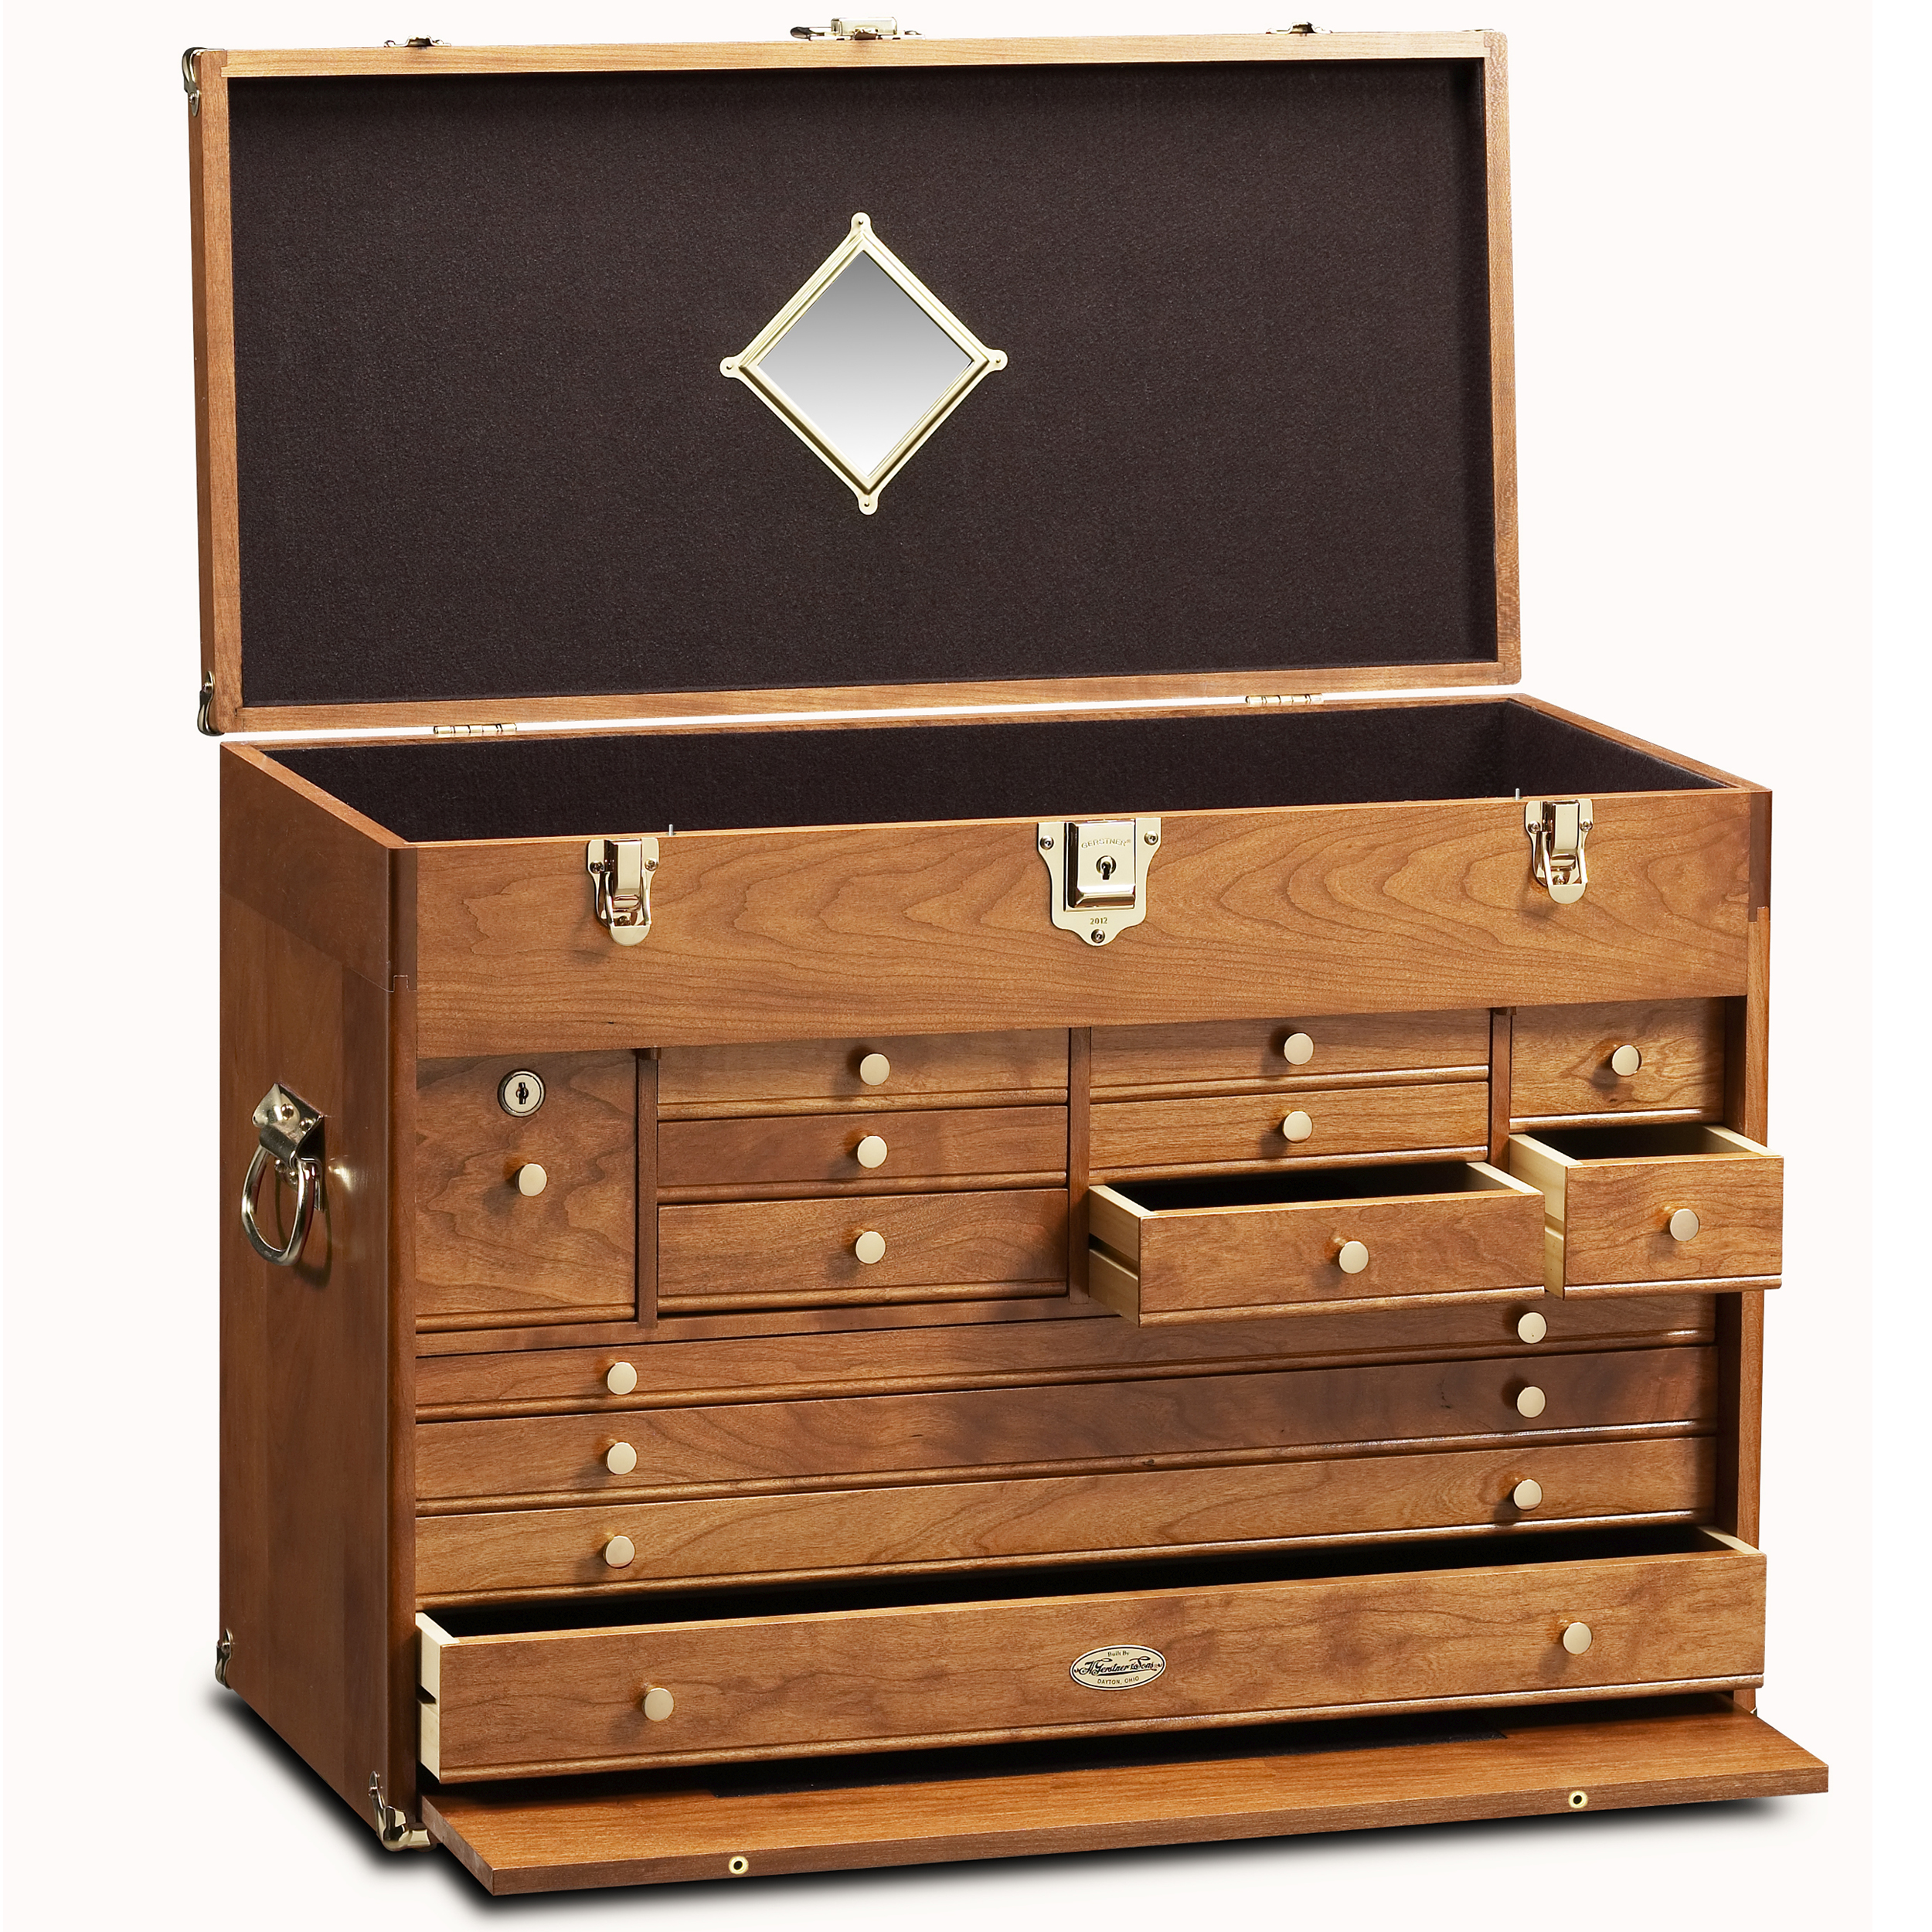 Ultimate USA Tool Chest - Cherry